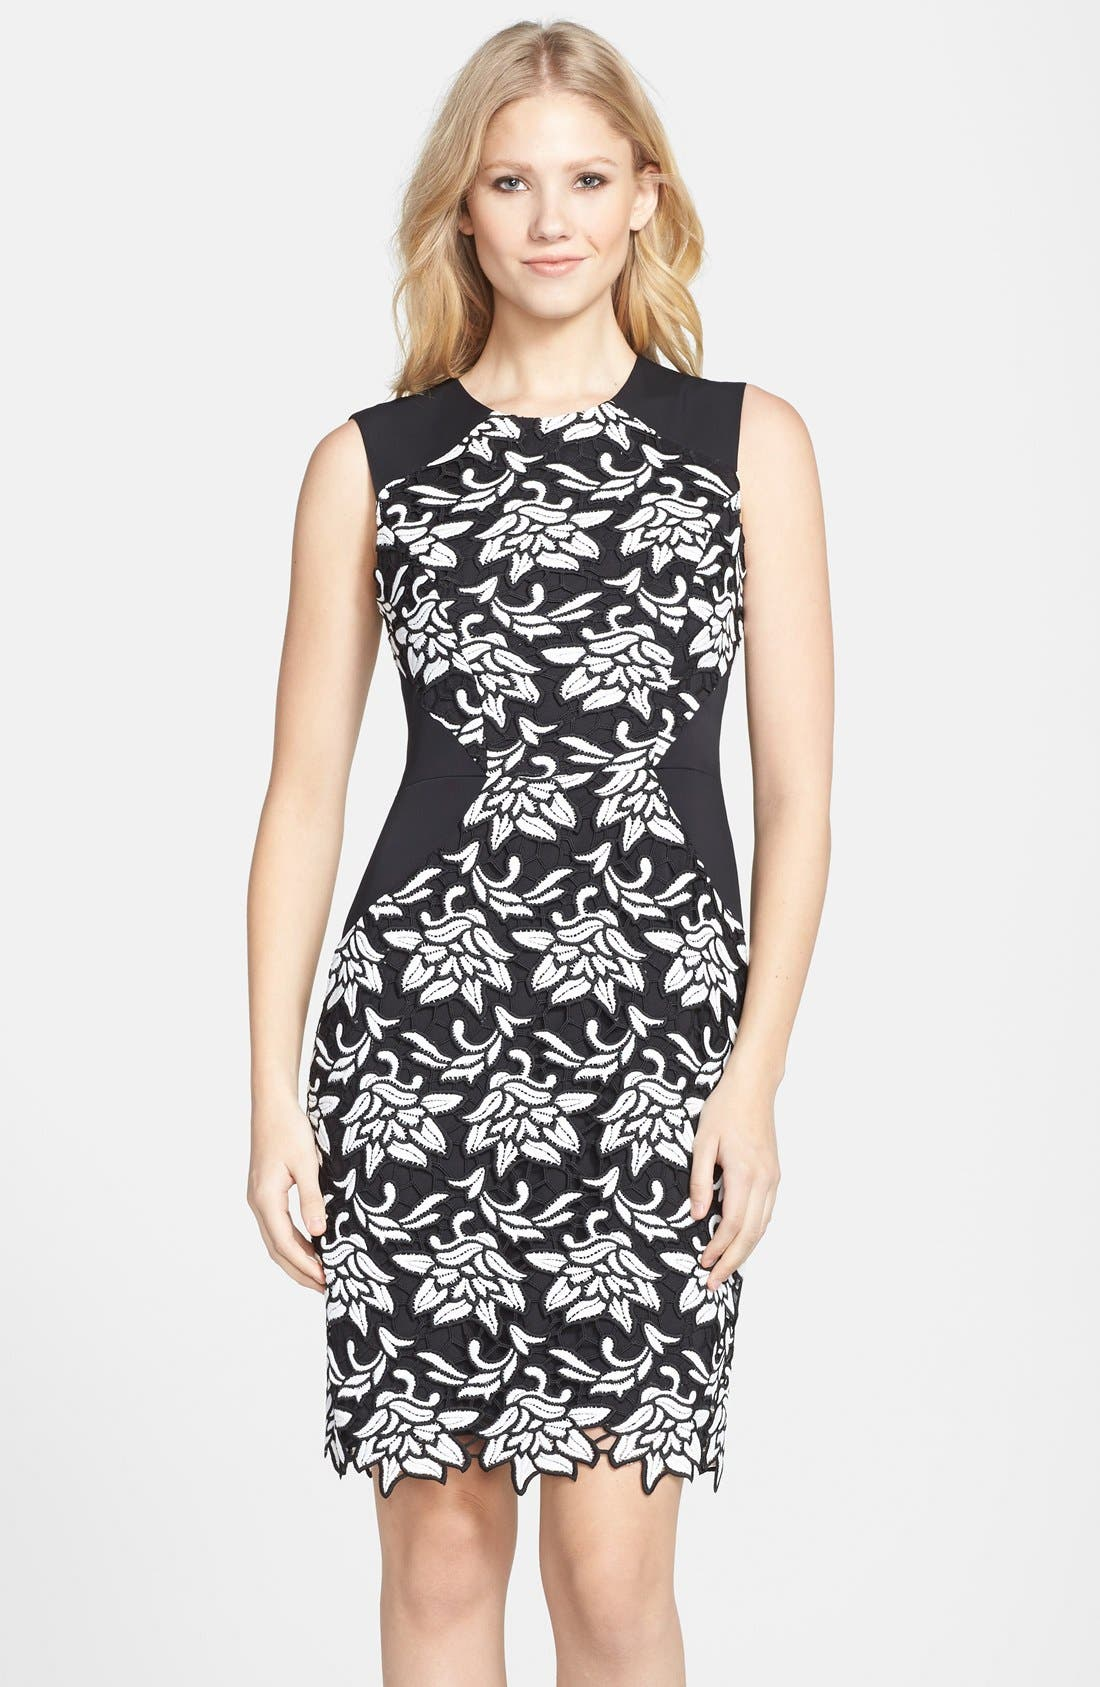 'Laurine' Floral Lace Overlay Sheath Dress,                             Main thumbnail 1, color,                             Black White